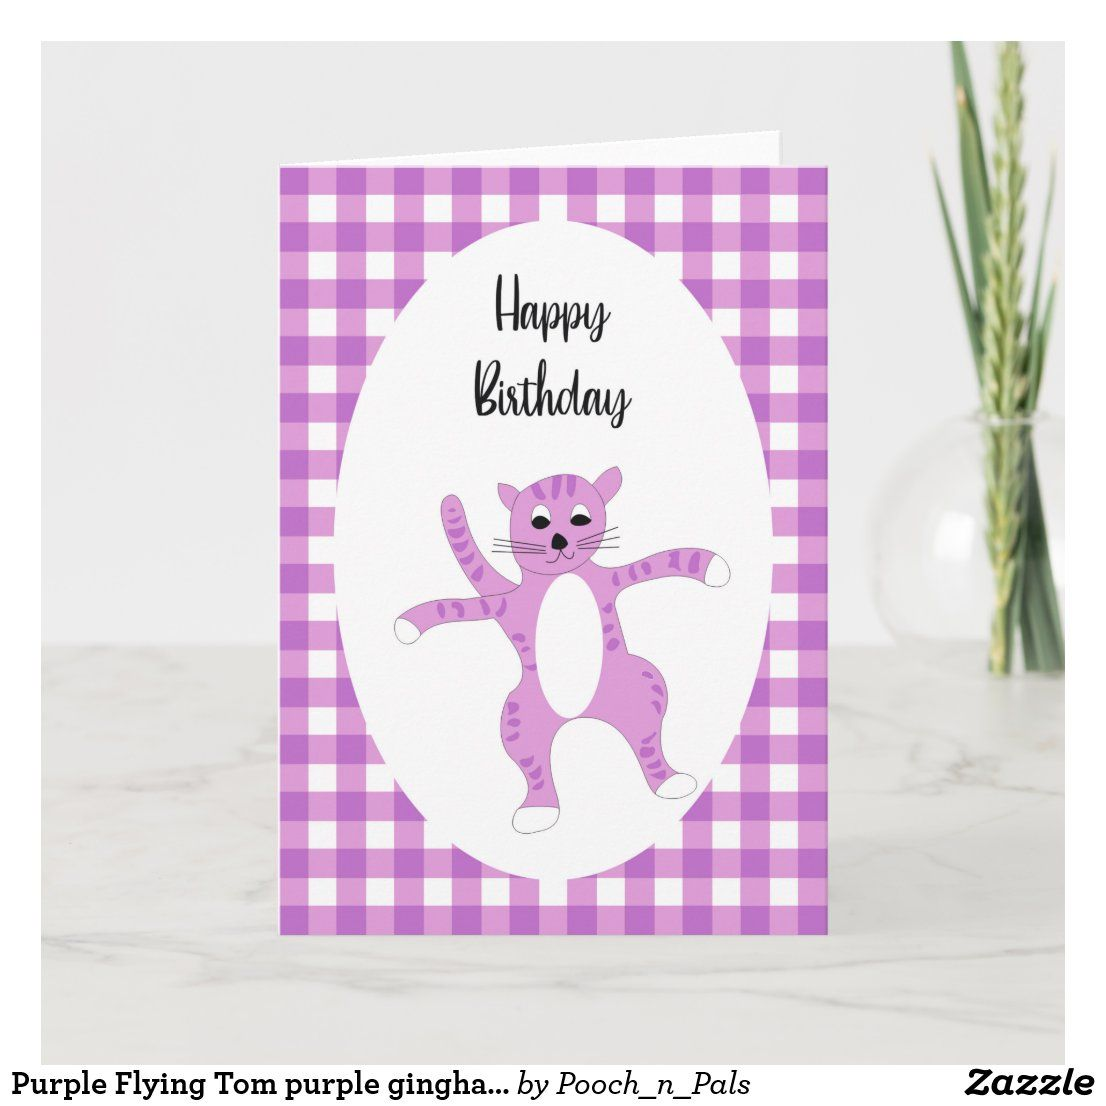 Purple Flying Tom purple gingham birthday card Zazzle.co